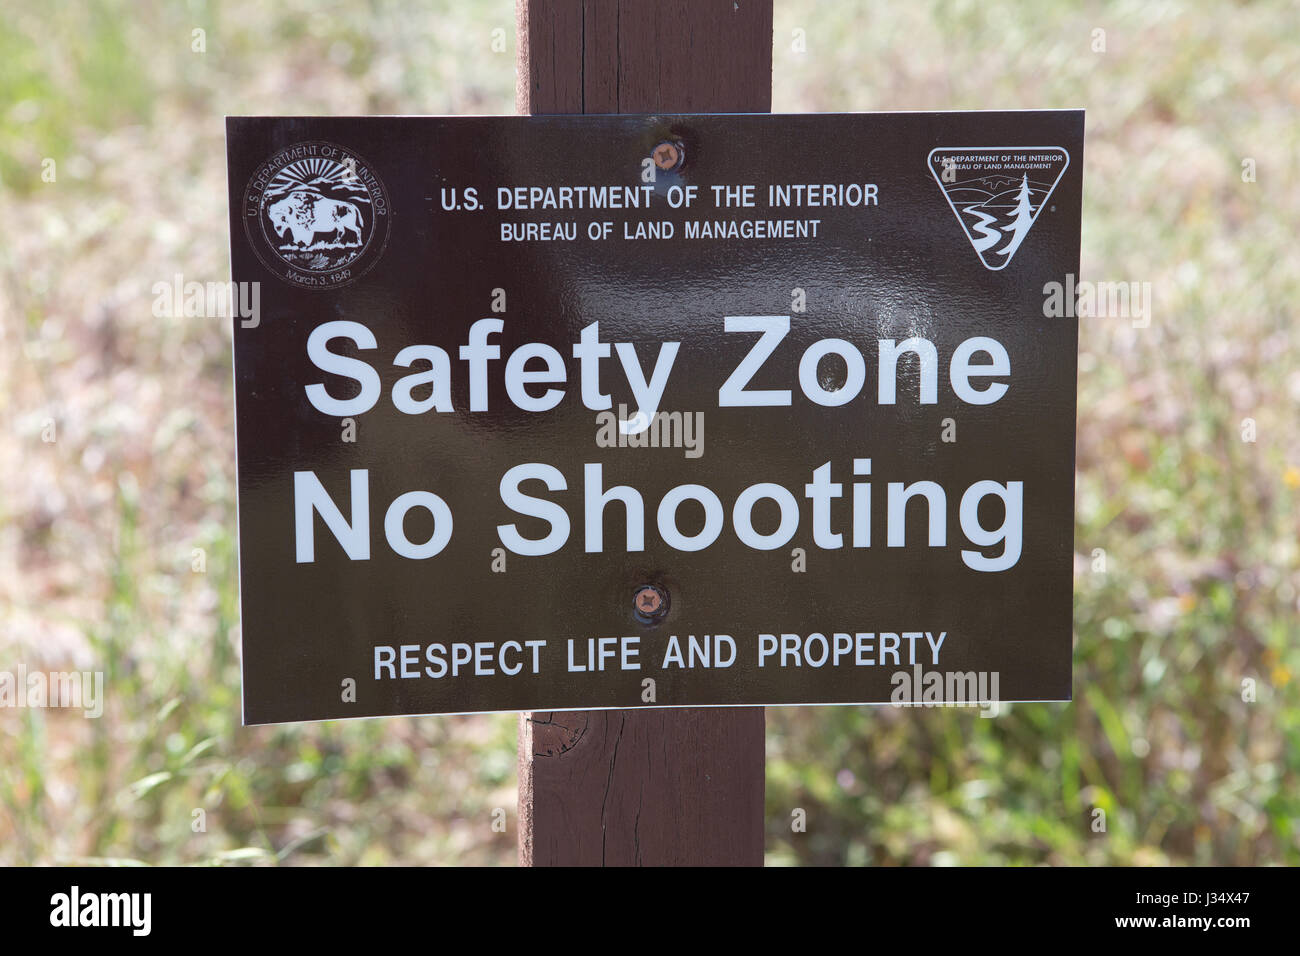 US Department of interior, Bureau of land management  Safety zone . No Shooting sign .Respect life and property. - Stock Image